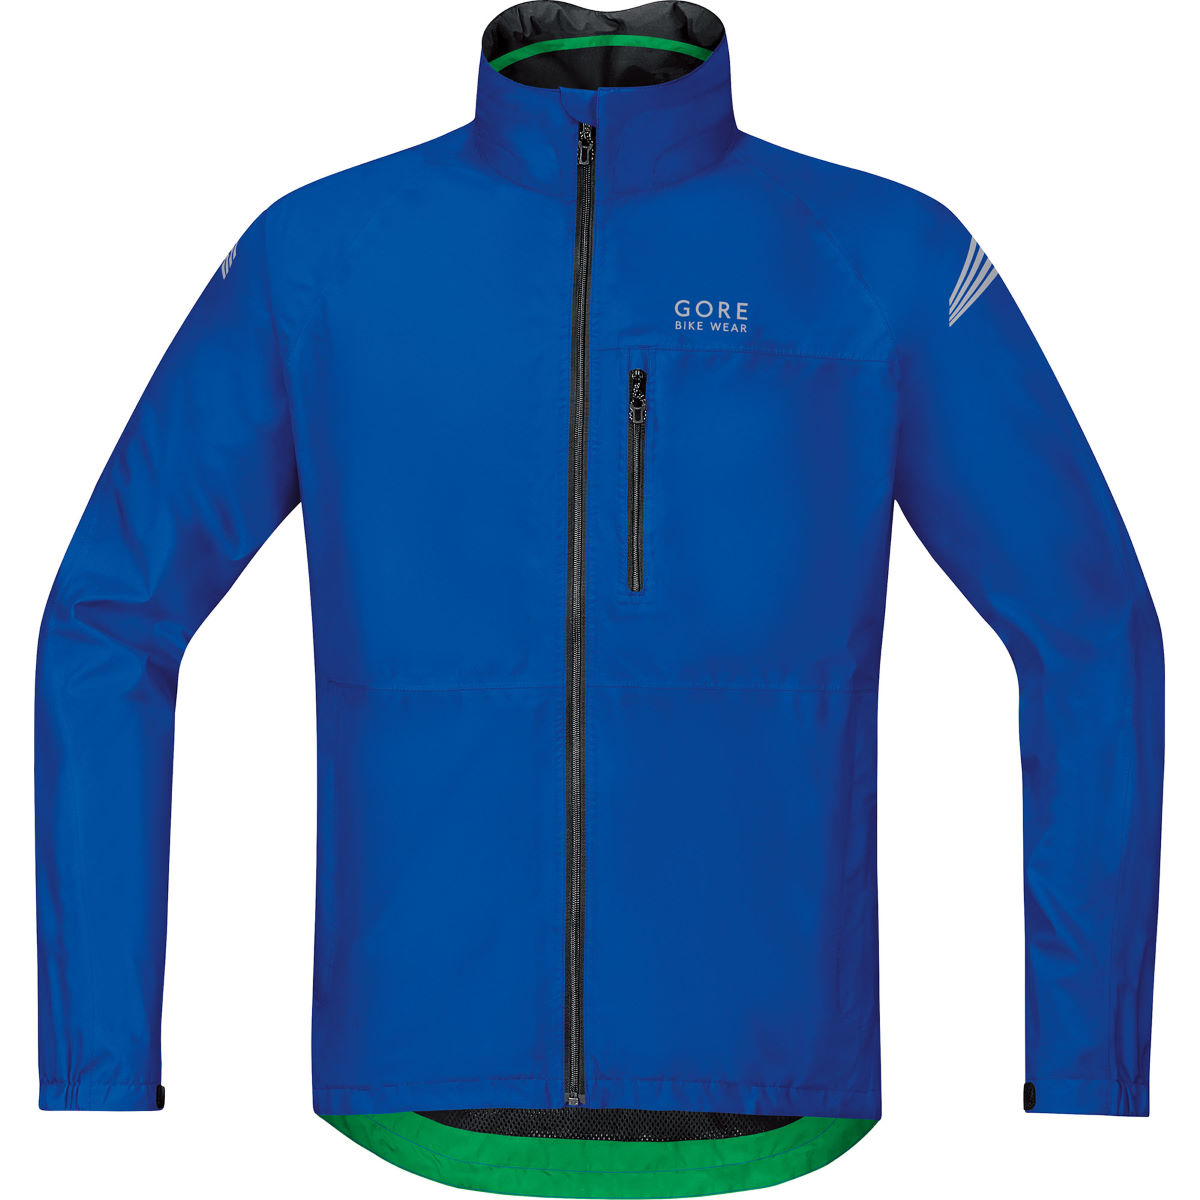 Veste Gore Bike Wear Element Gore-Tex - S Brilliant Blue Vestes imperméables vélo